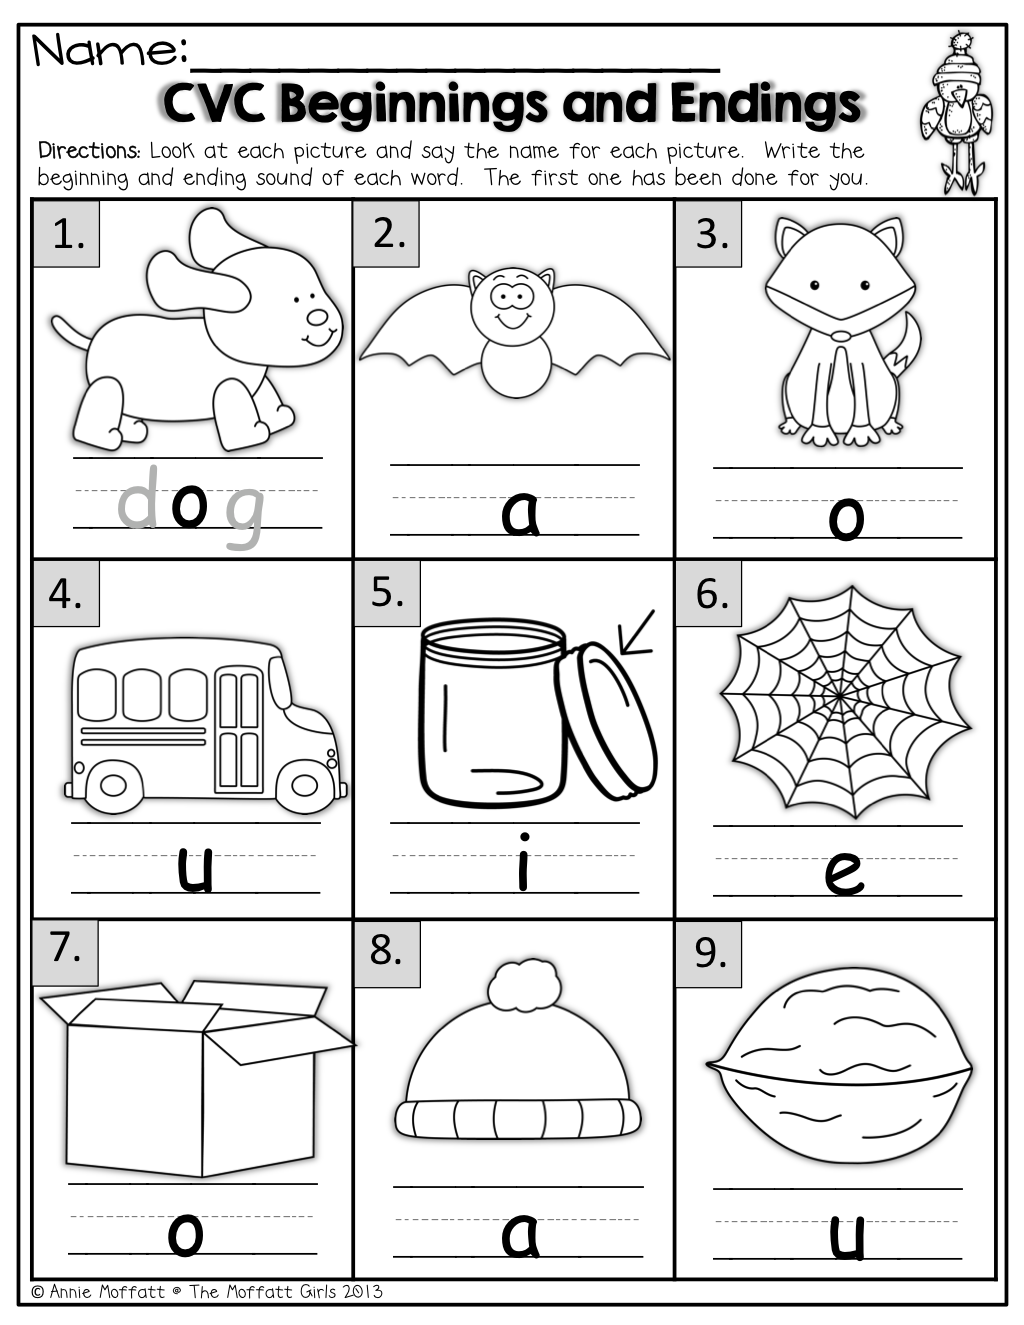 Worksheets Kindergarten Language Arts Worksheets cvc beginning and endings kinderland collaborative pinterest kindergarten language artskindergarten worksheetsphonemic